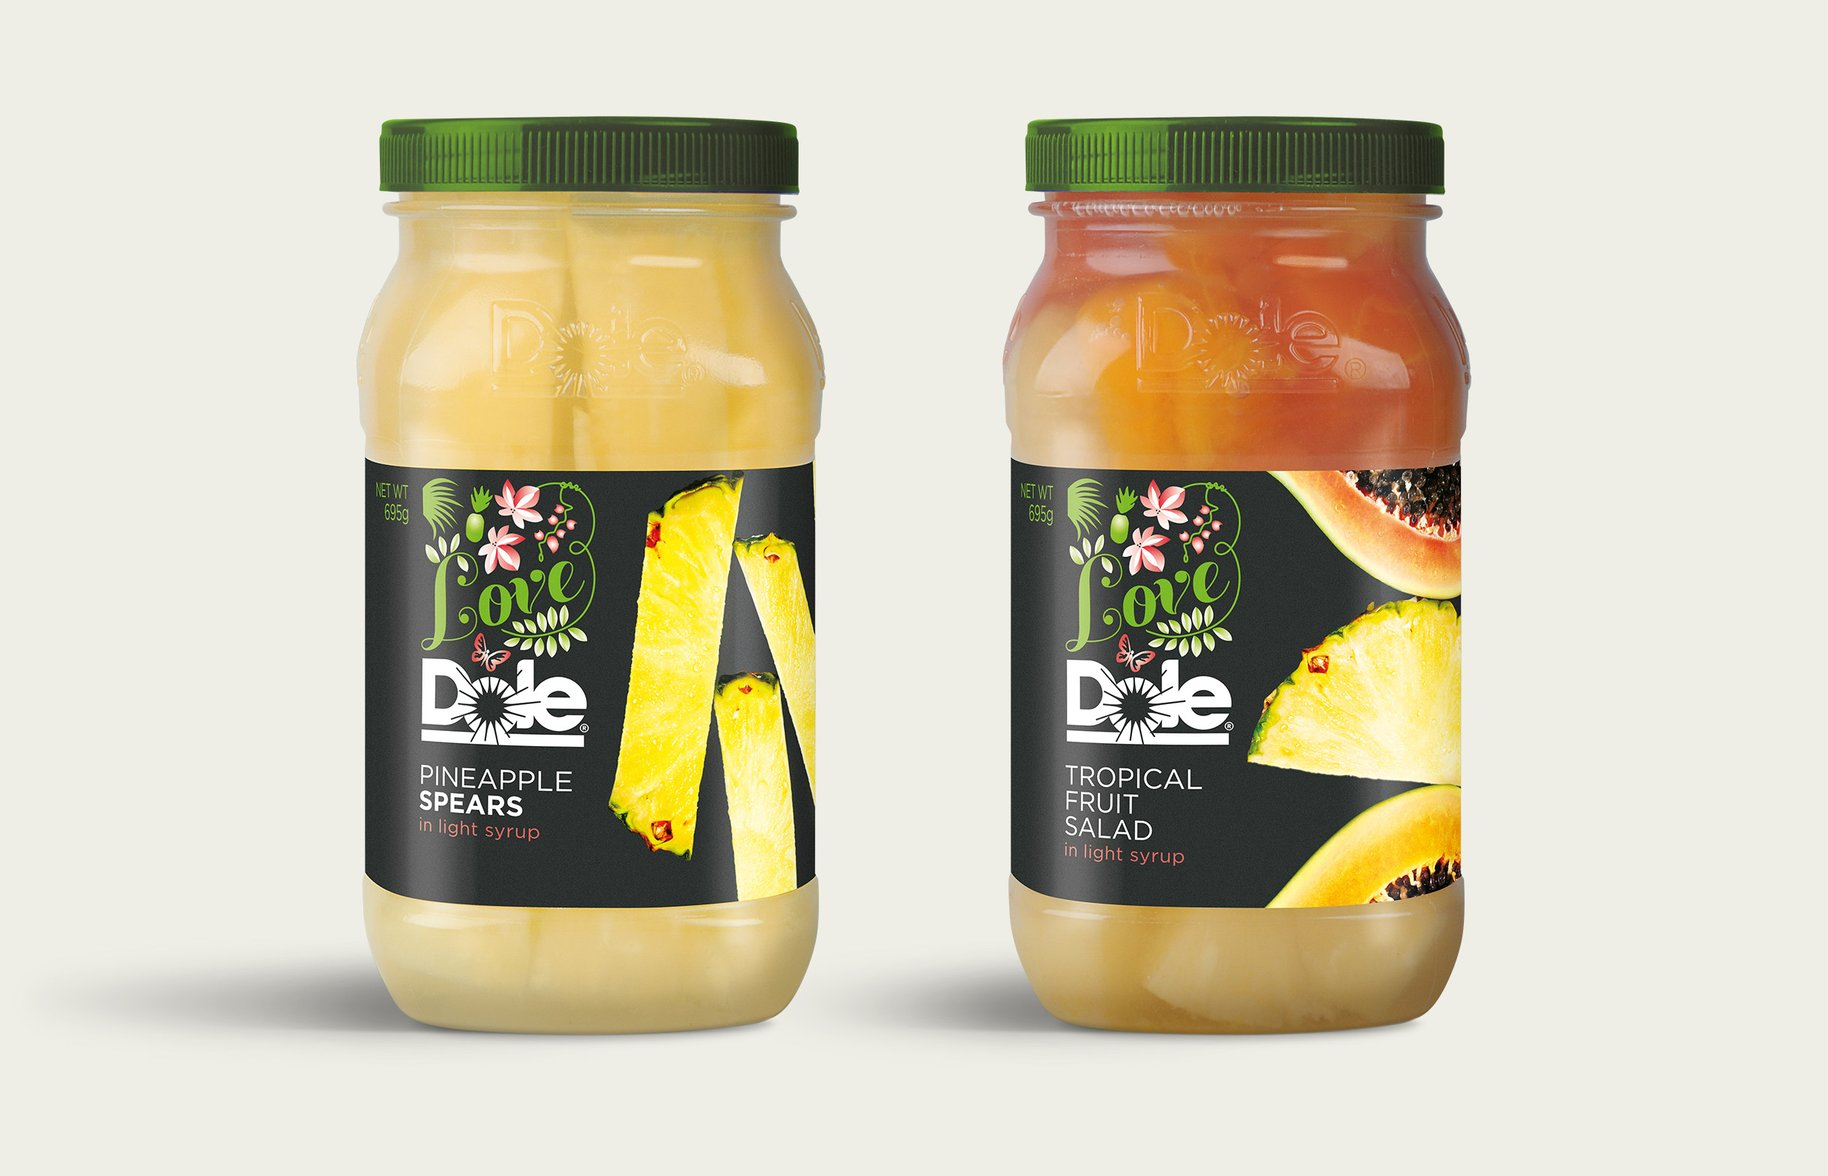 Dole premium Packaging Design